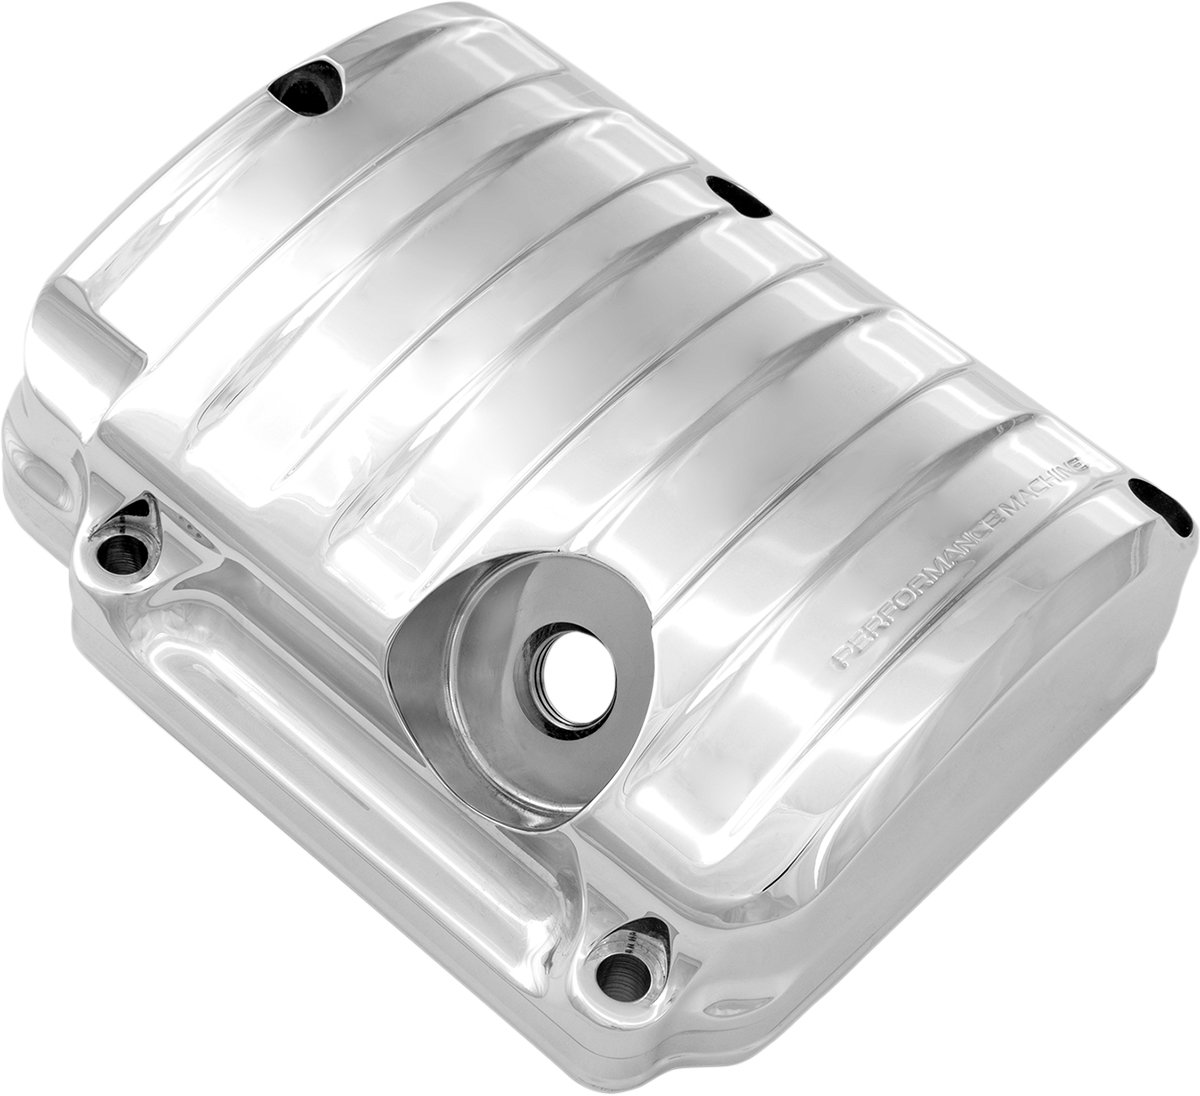 Performance Machine Drive Chrome 5-Speed Transmission Cover